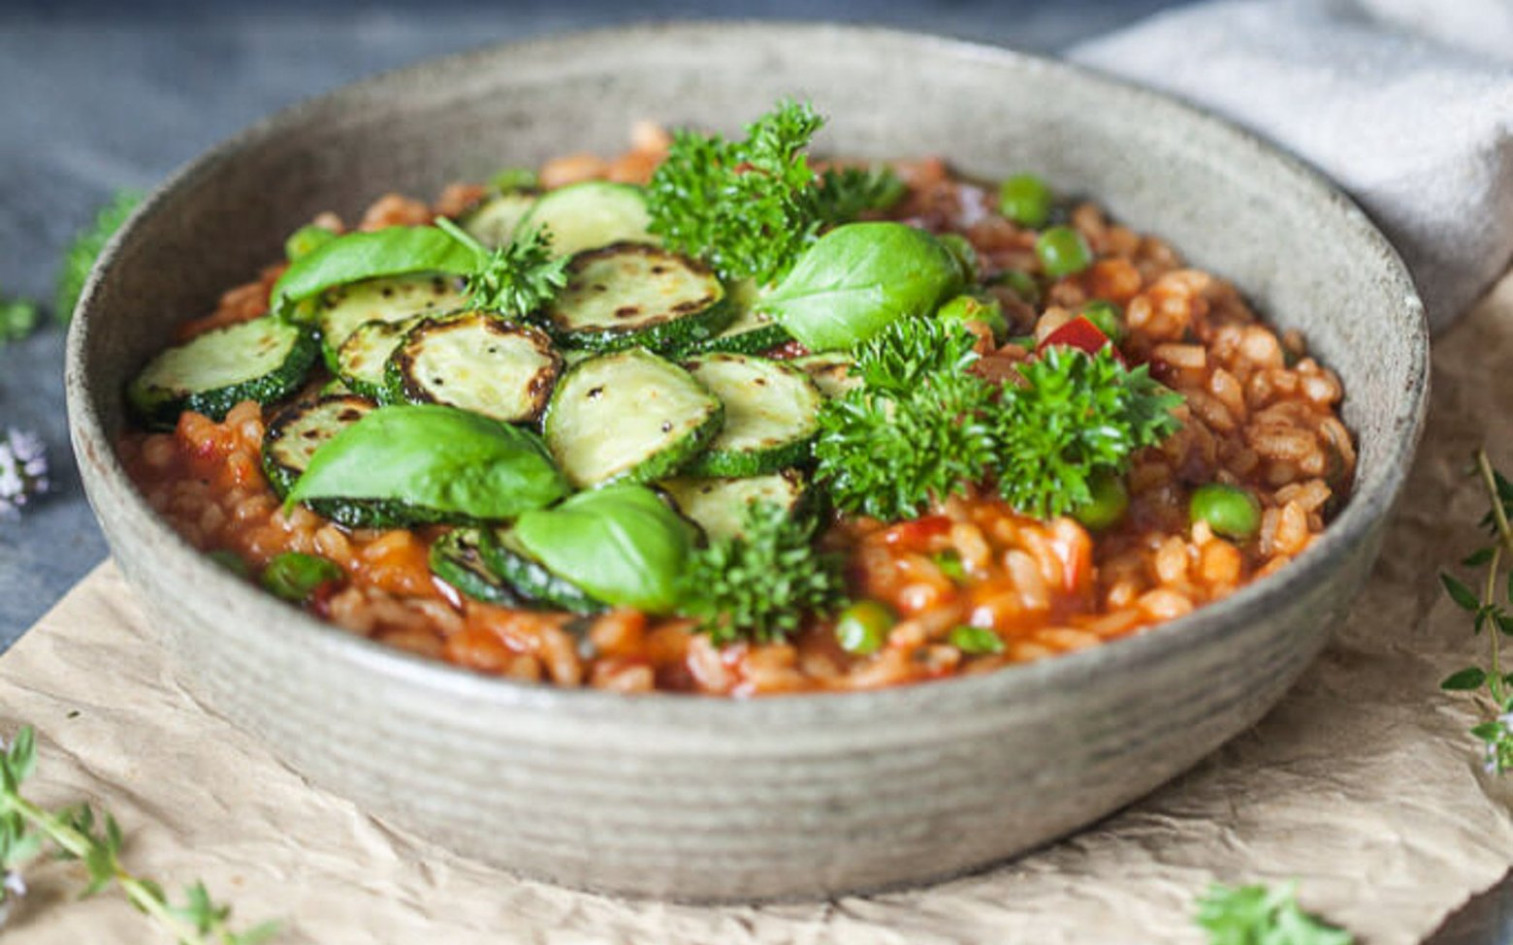 Combat High Cholesterol With These 12 Plant-Based Swaps - One ..